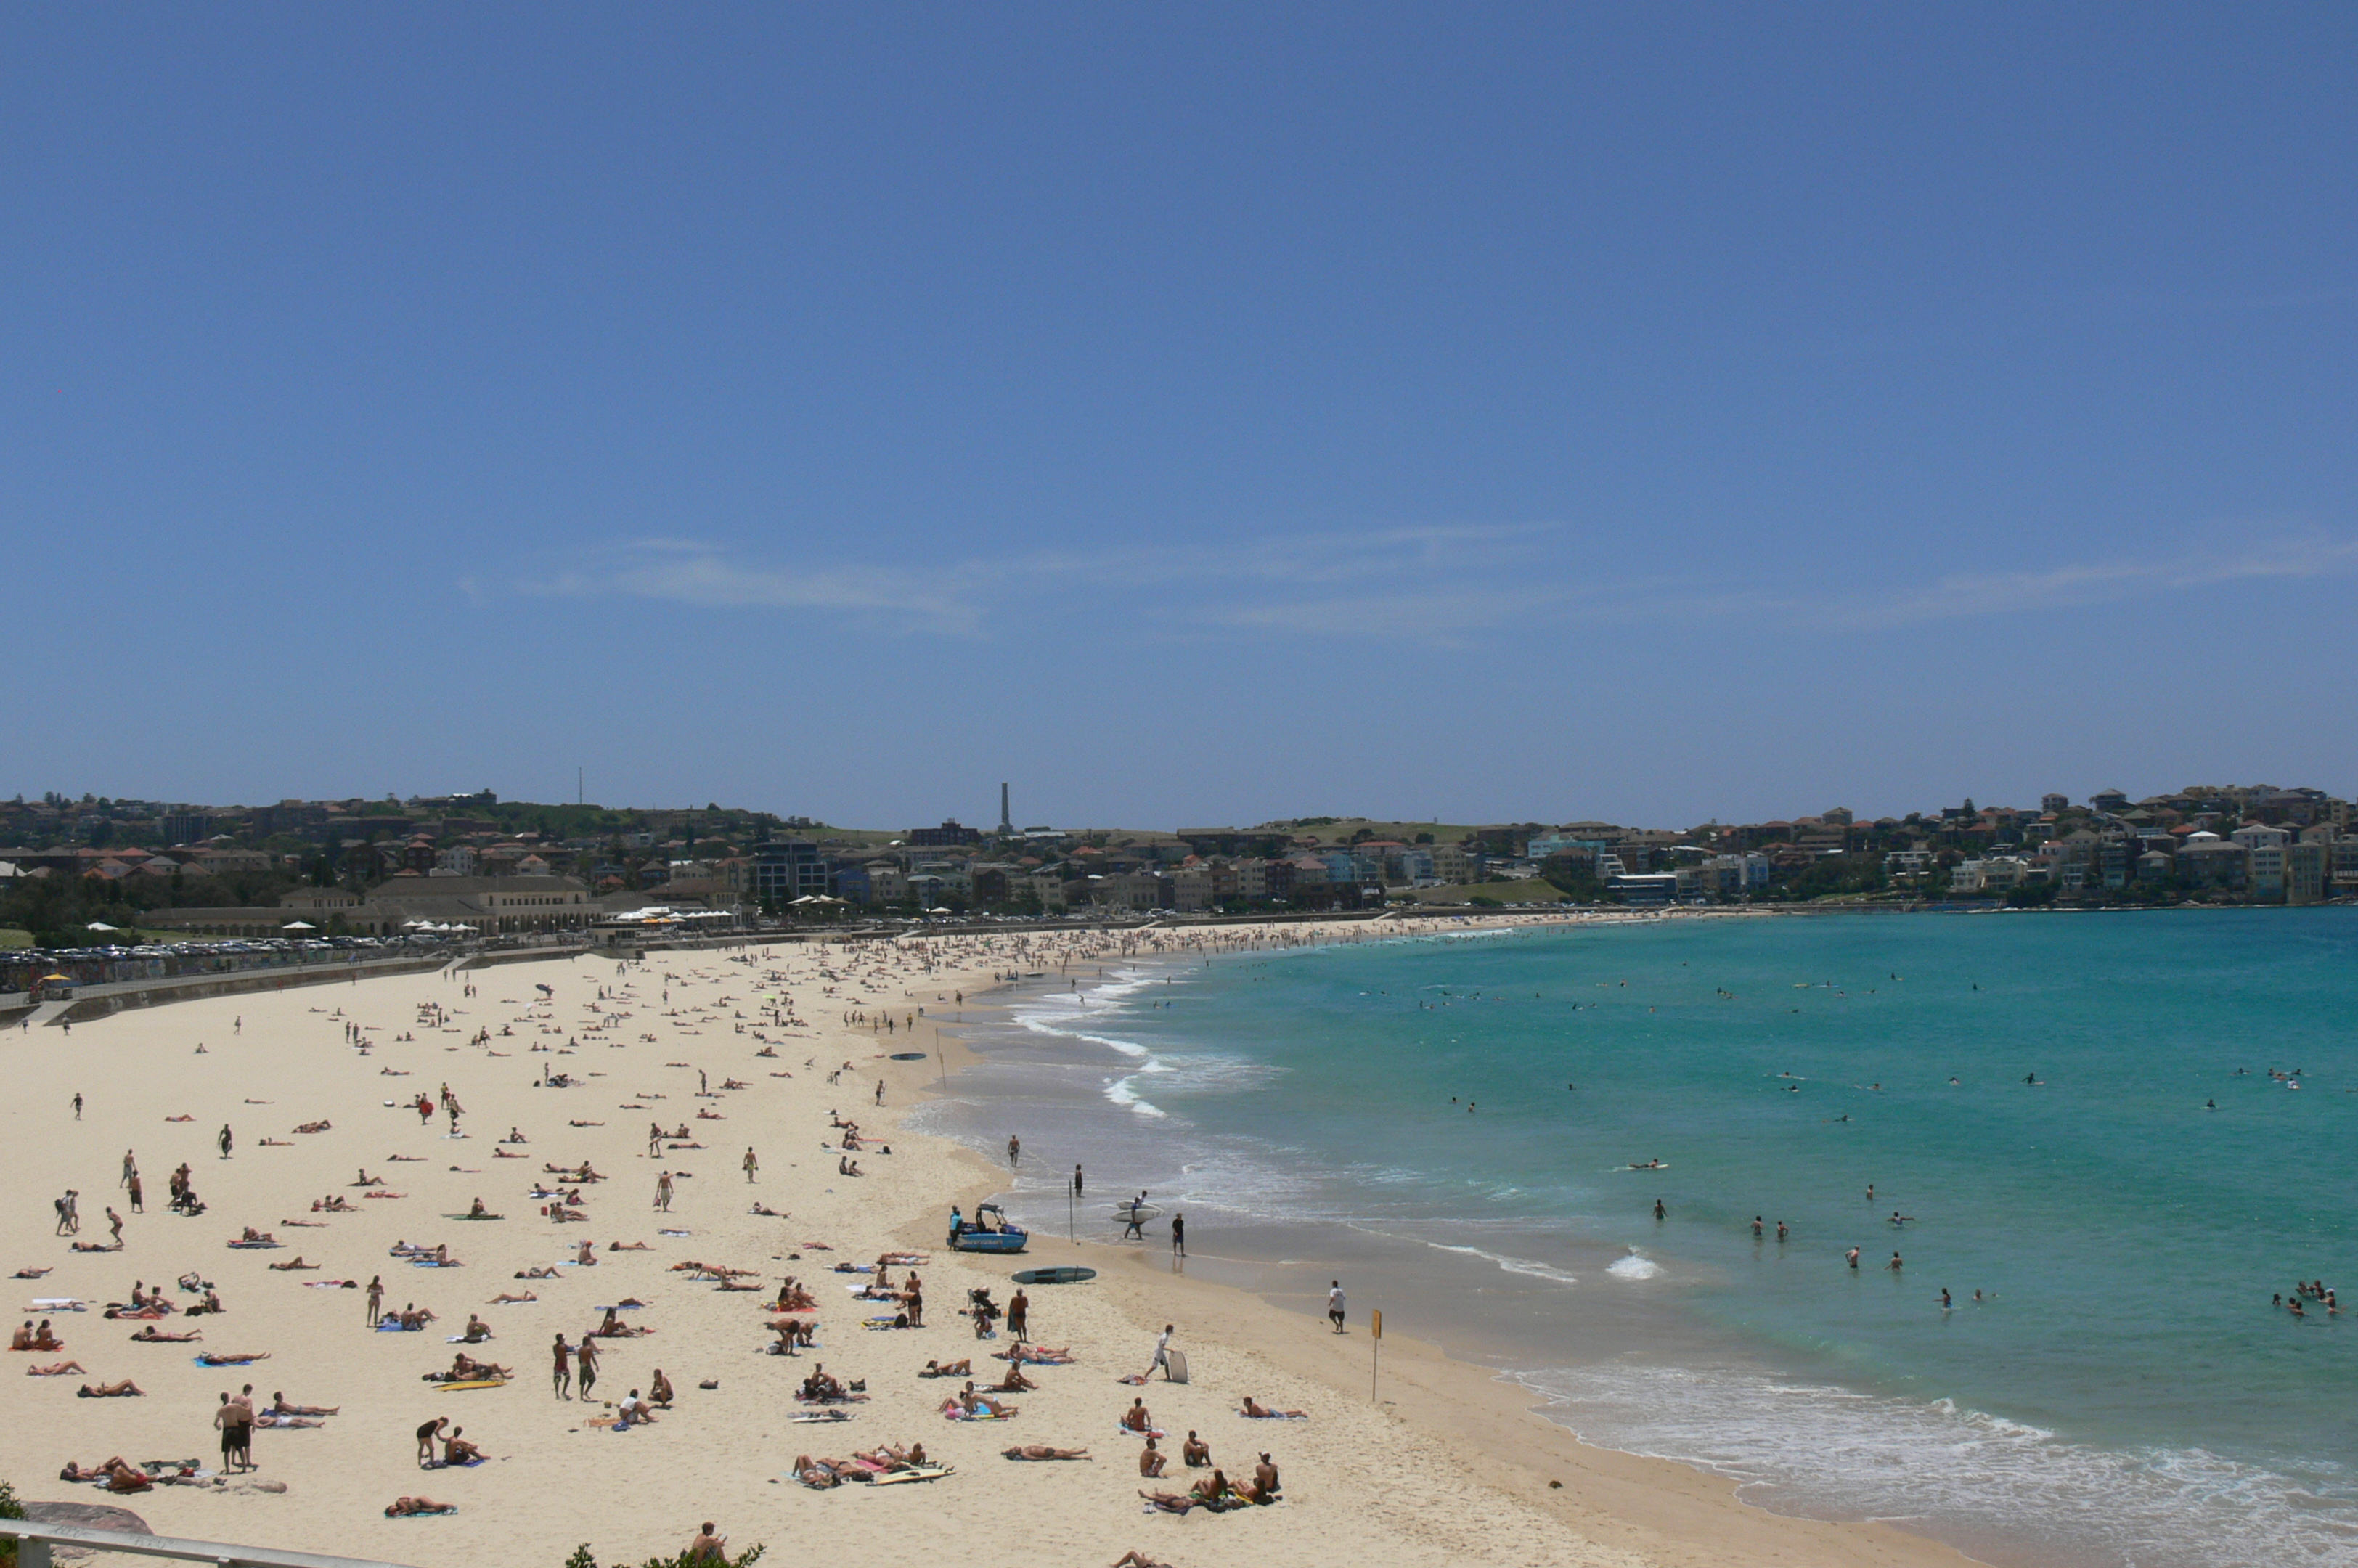 Bondi Beach image from wikimedia